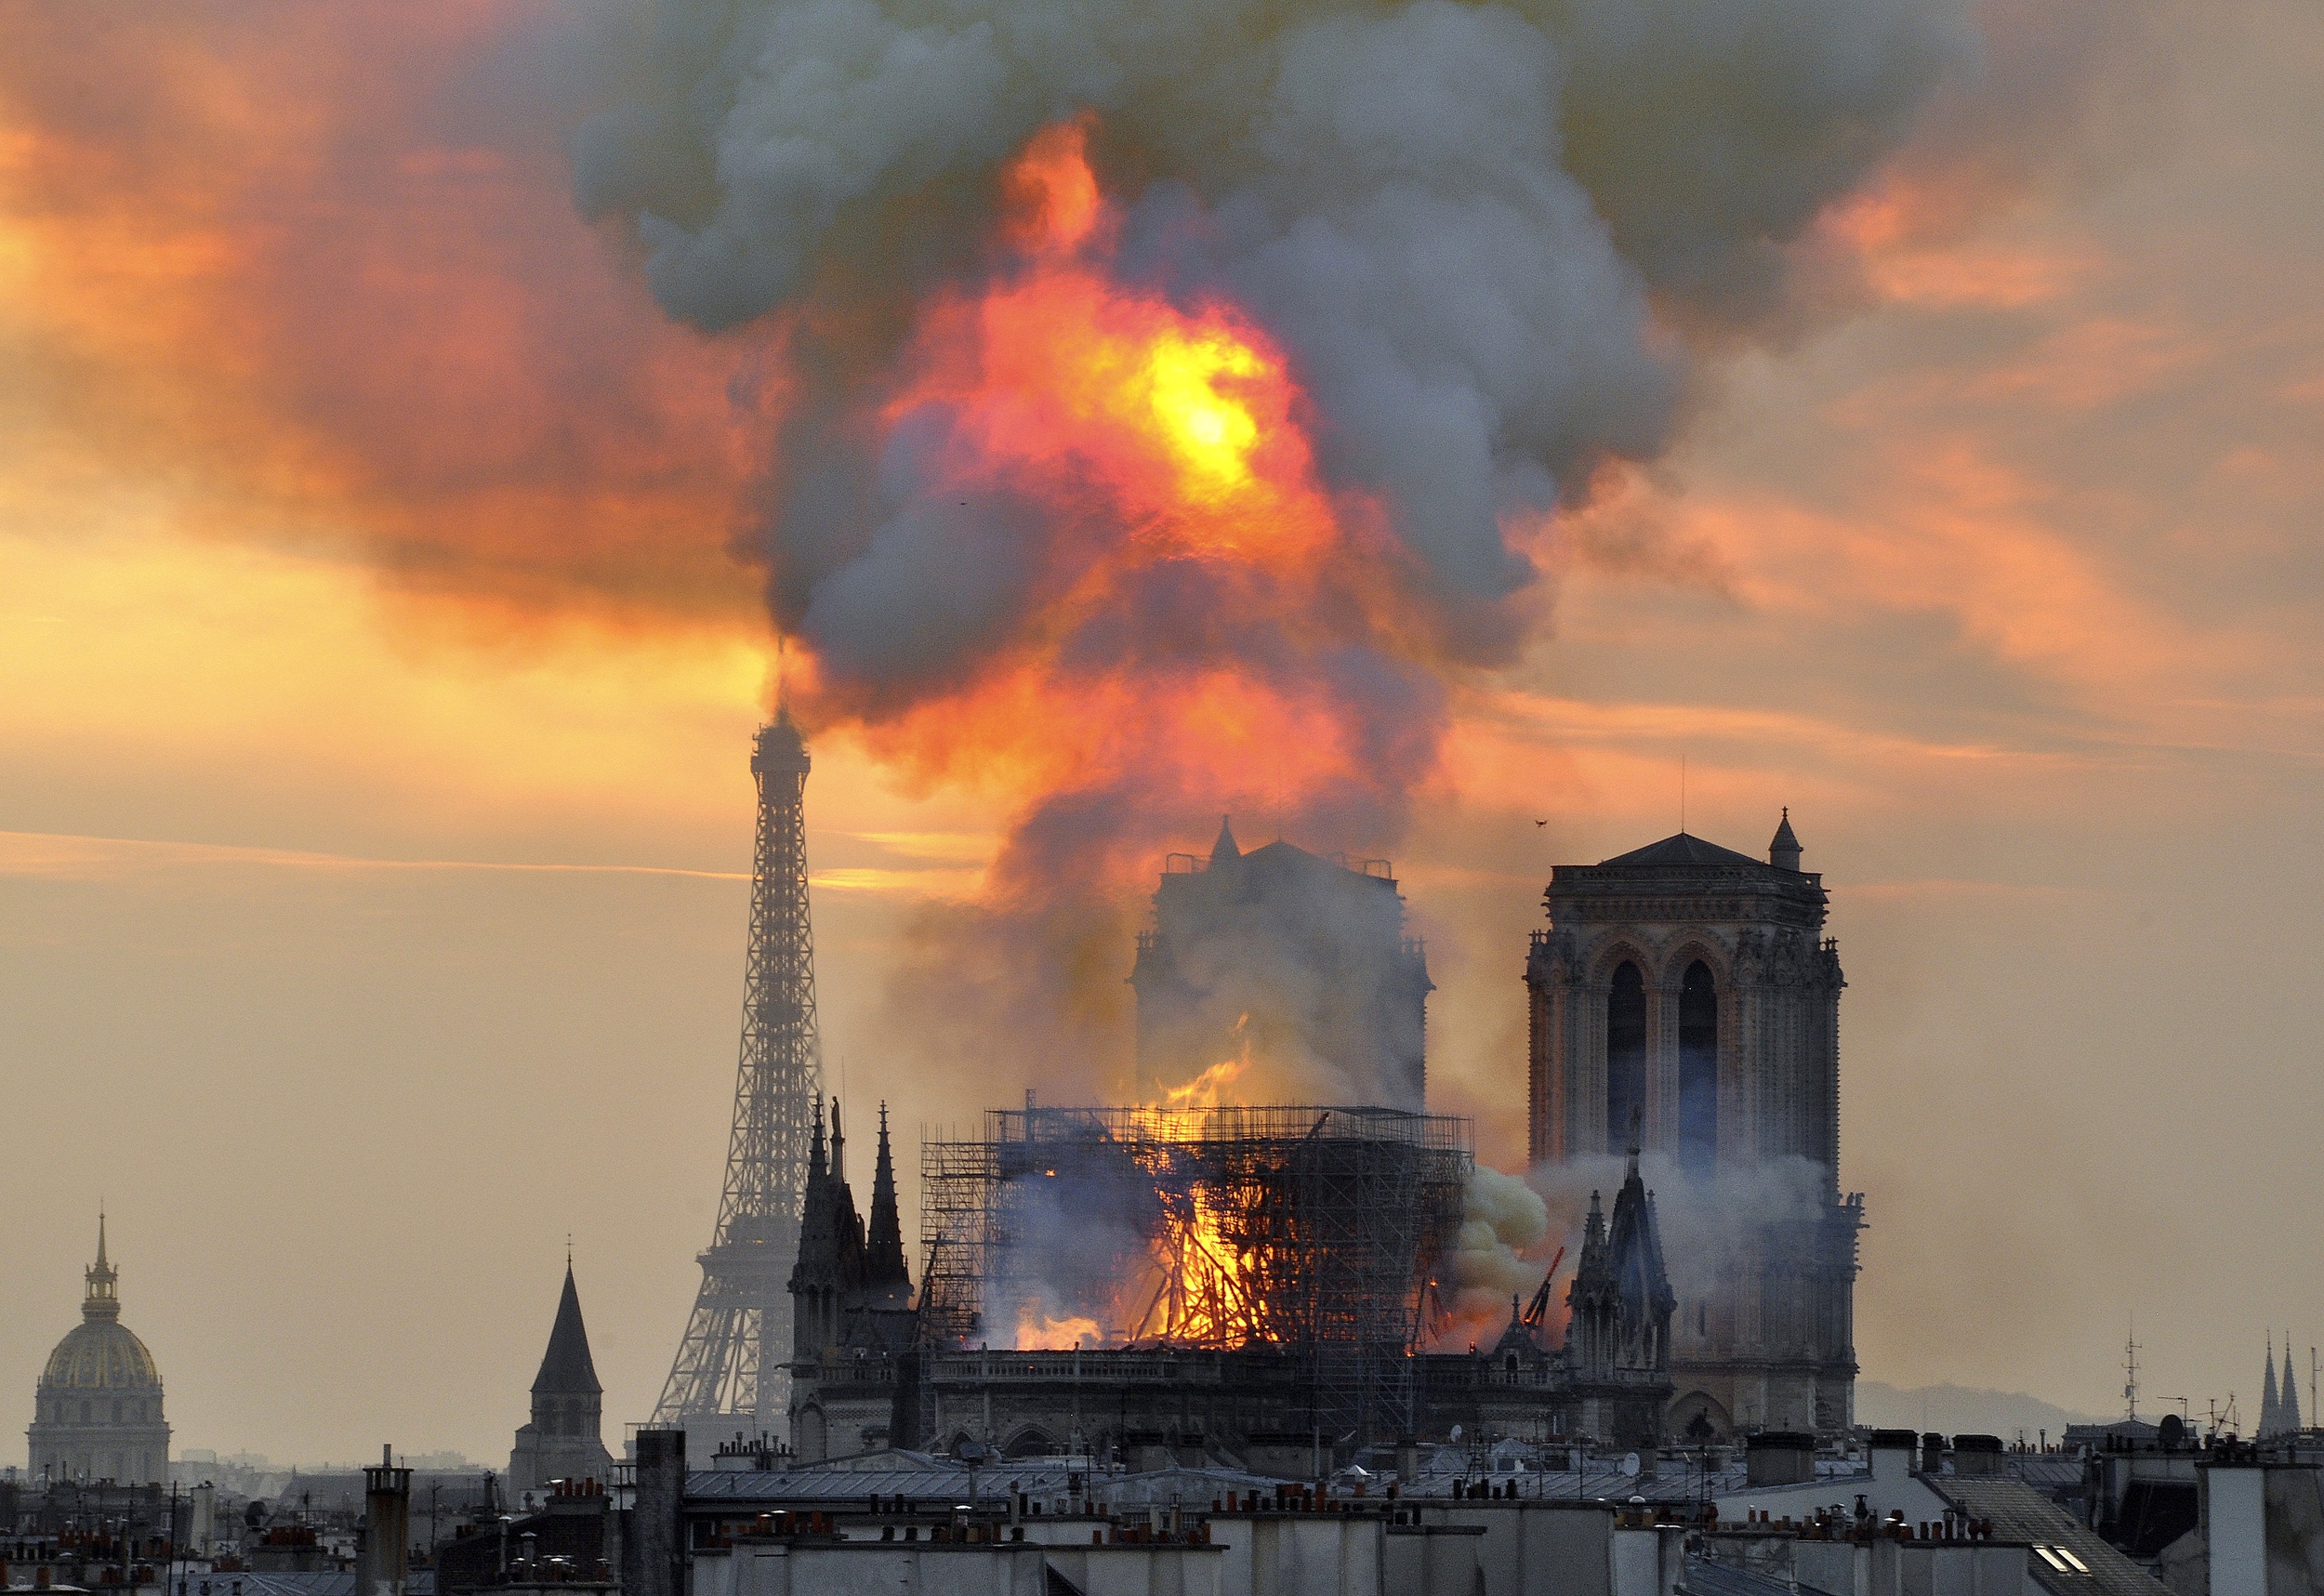 nbcnews.com - Notre Dame Cathedral fire sparks Islamophobic conspiracy theories on social media